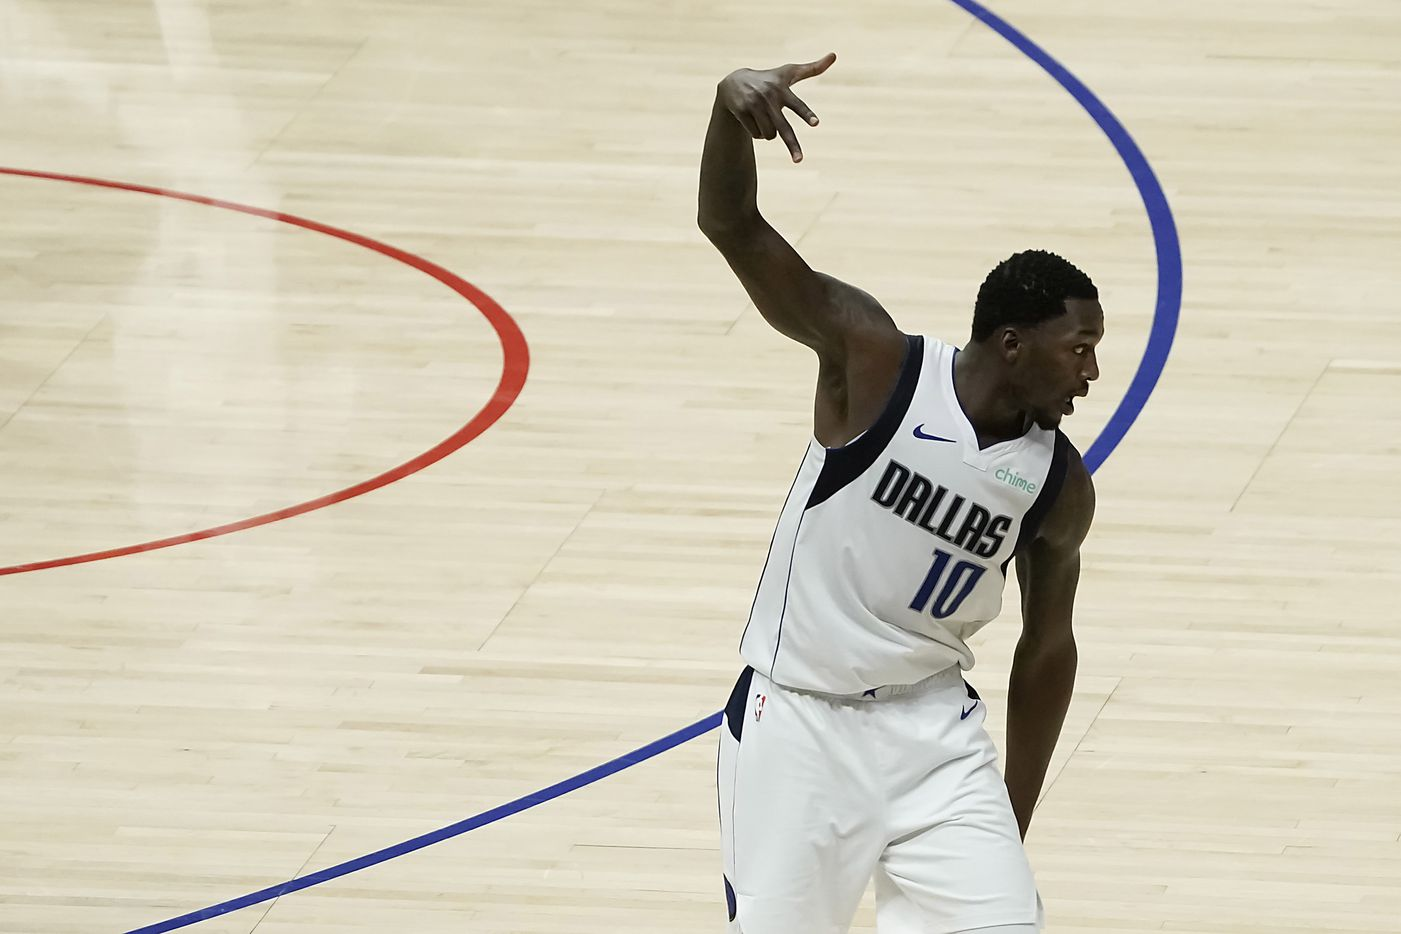 Dallas Mavericks forward Dorian Finney-Smith celebrates after making a 3-pointer during the second half of an NBA playoff basketball game against the LA Clippers at Staples Center on Saturday, May 22, 2021, in Los Angeles. The Mavericks won the game 113-103.